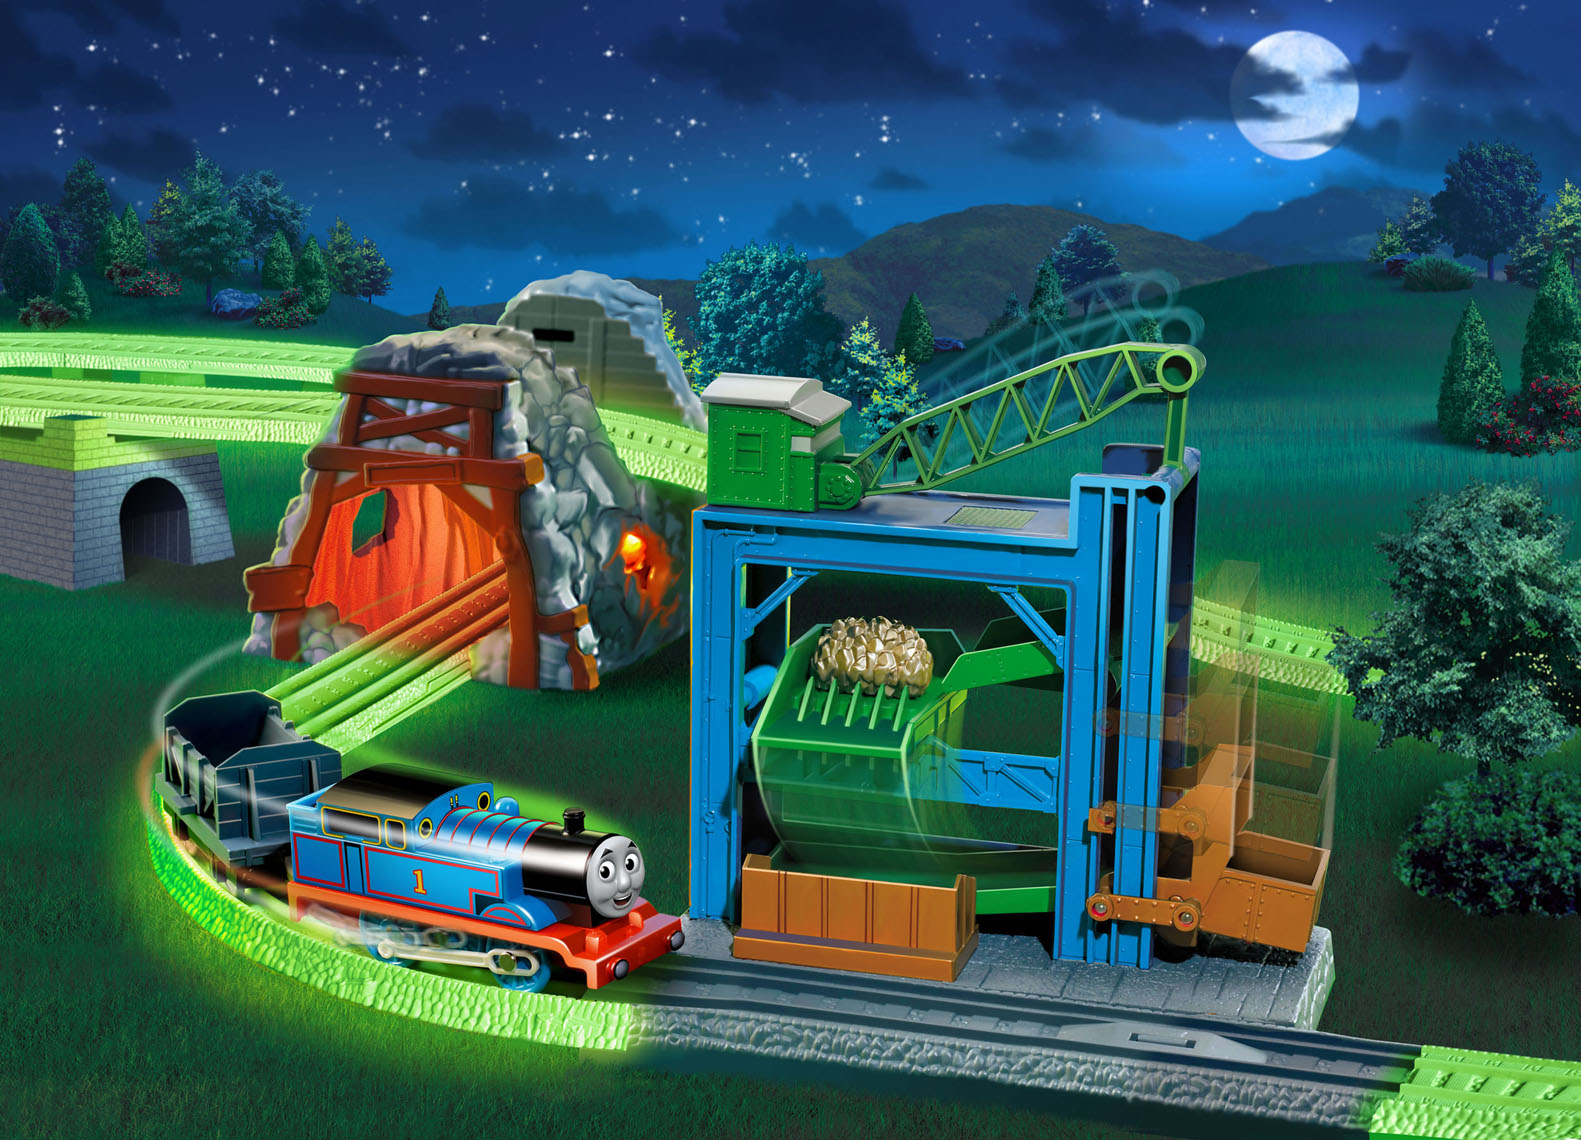 Thomas the tank engine midnight ride